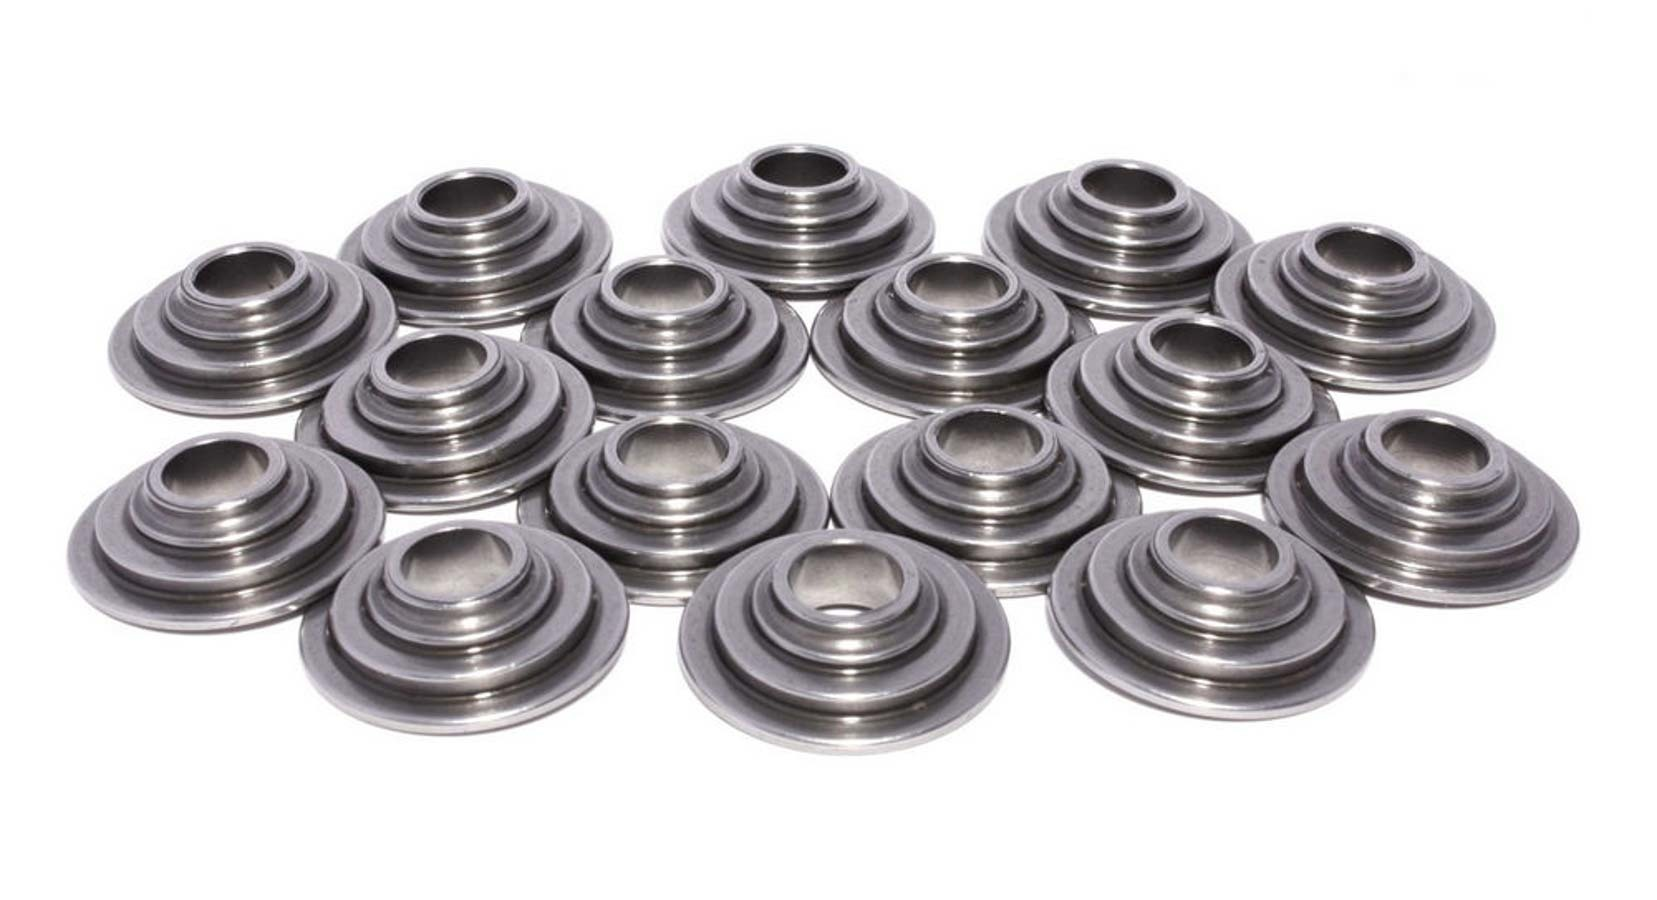 Comp Cams 1750-16 Valve Spring Retainer, 10 Degree, 0.870 in / 0.735 in OD Steps, 1.250 in Dual Spring, Steel, Set of 16